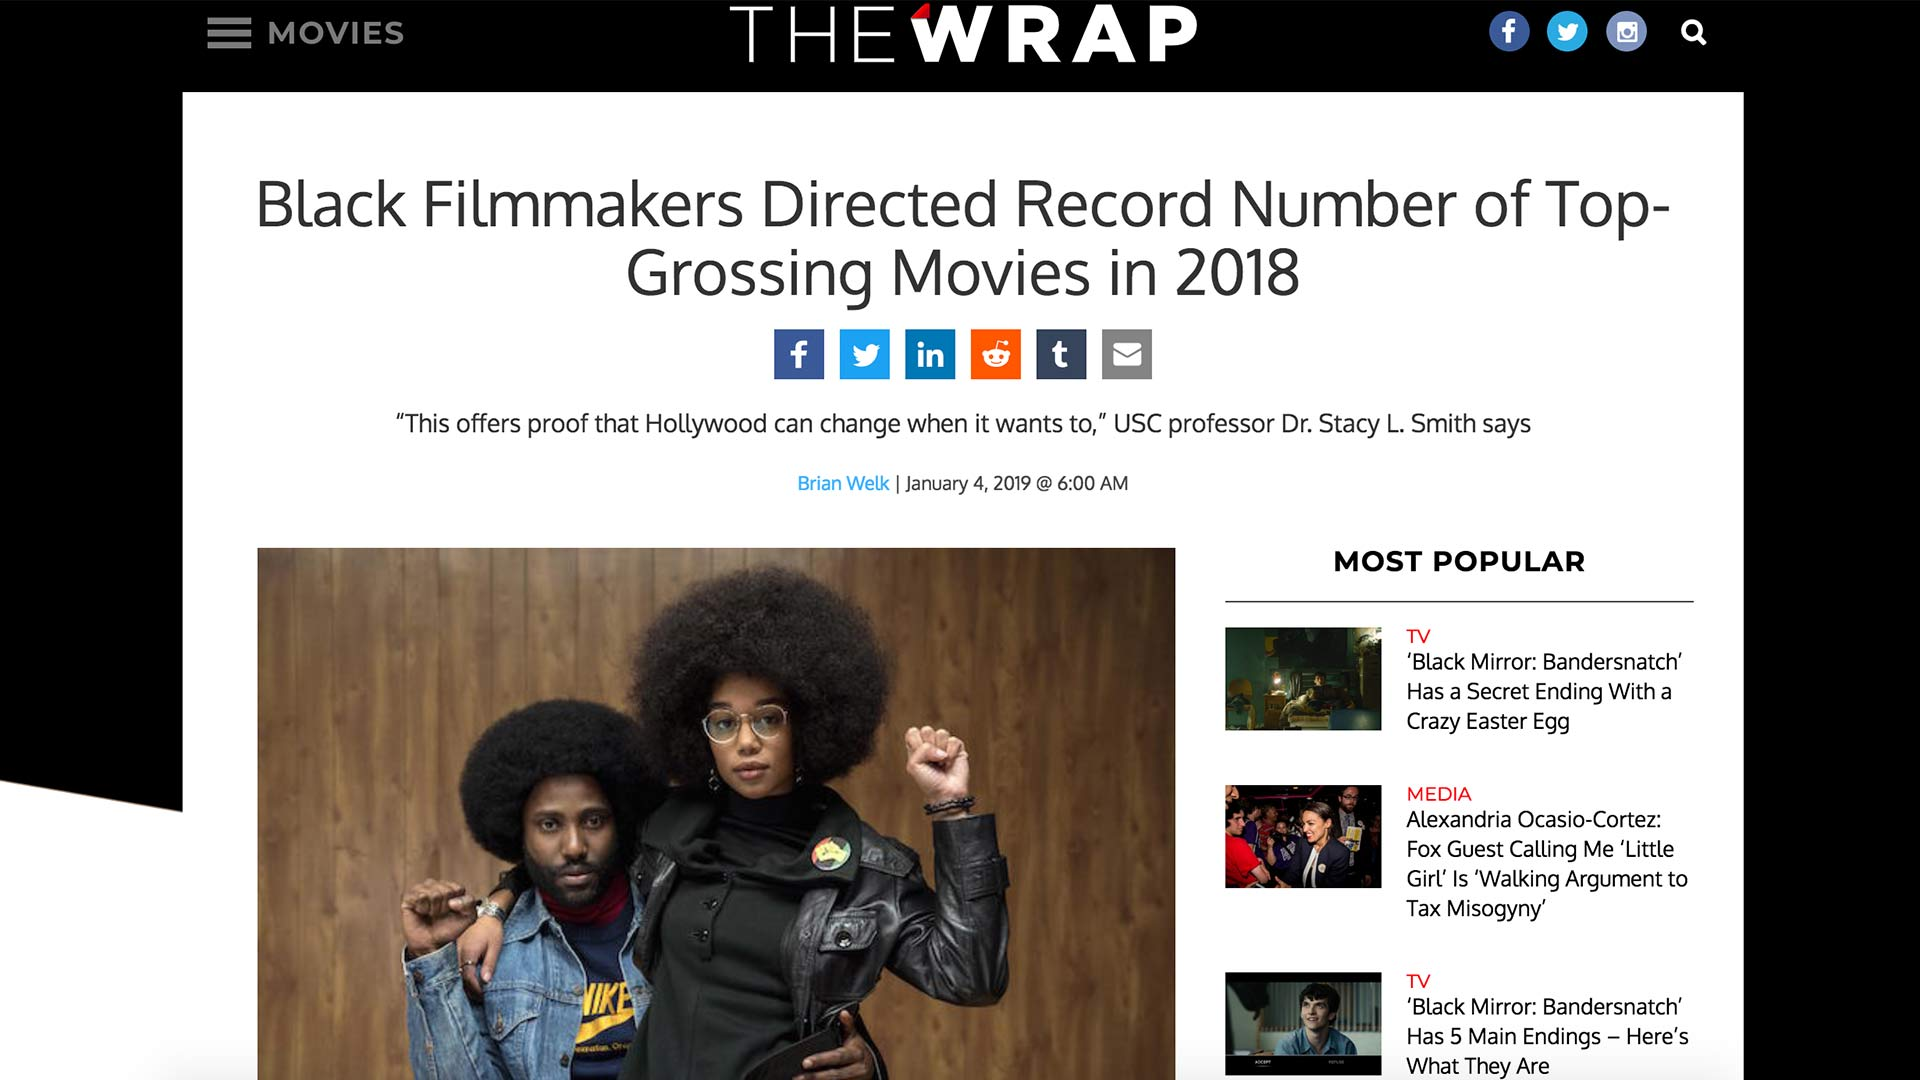 Fairness Rocks News Black Filmmakers Directed Record Number of Top-Grossing Movies in 2018